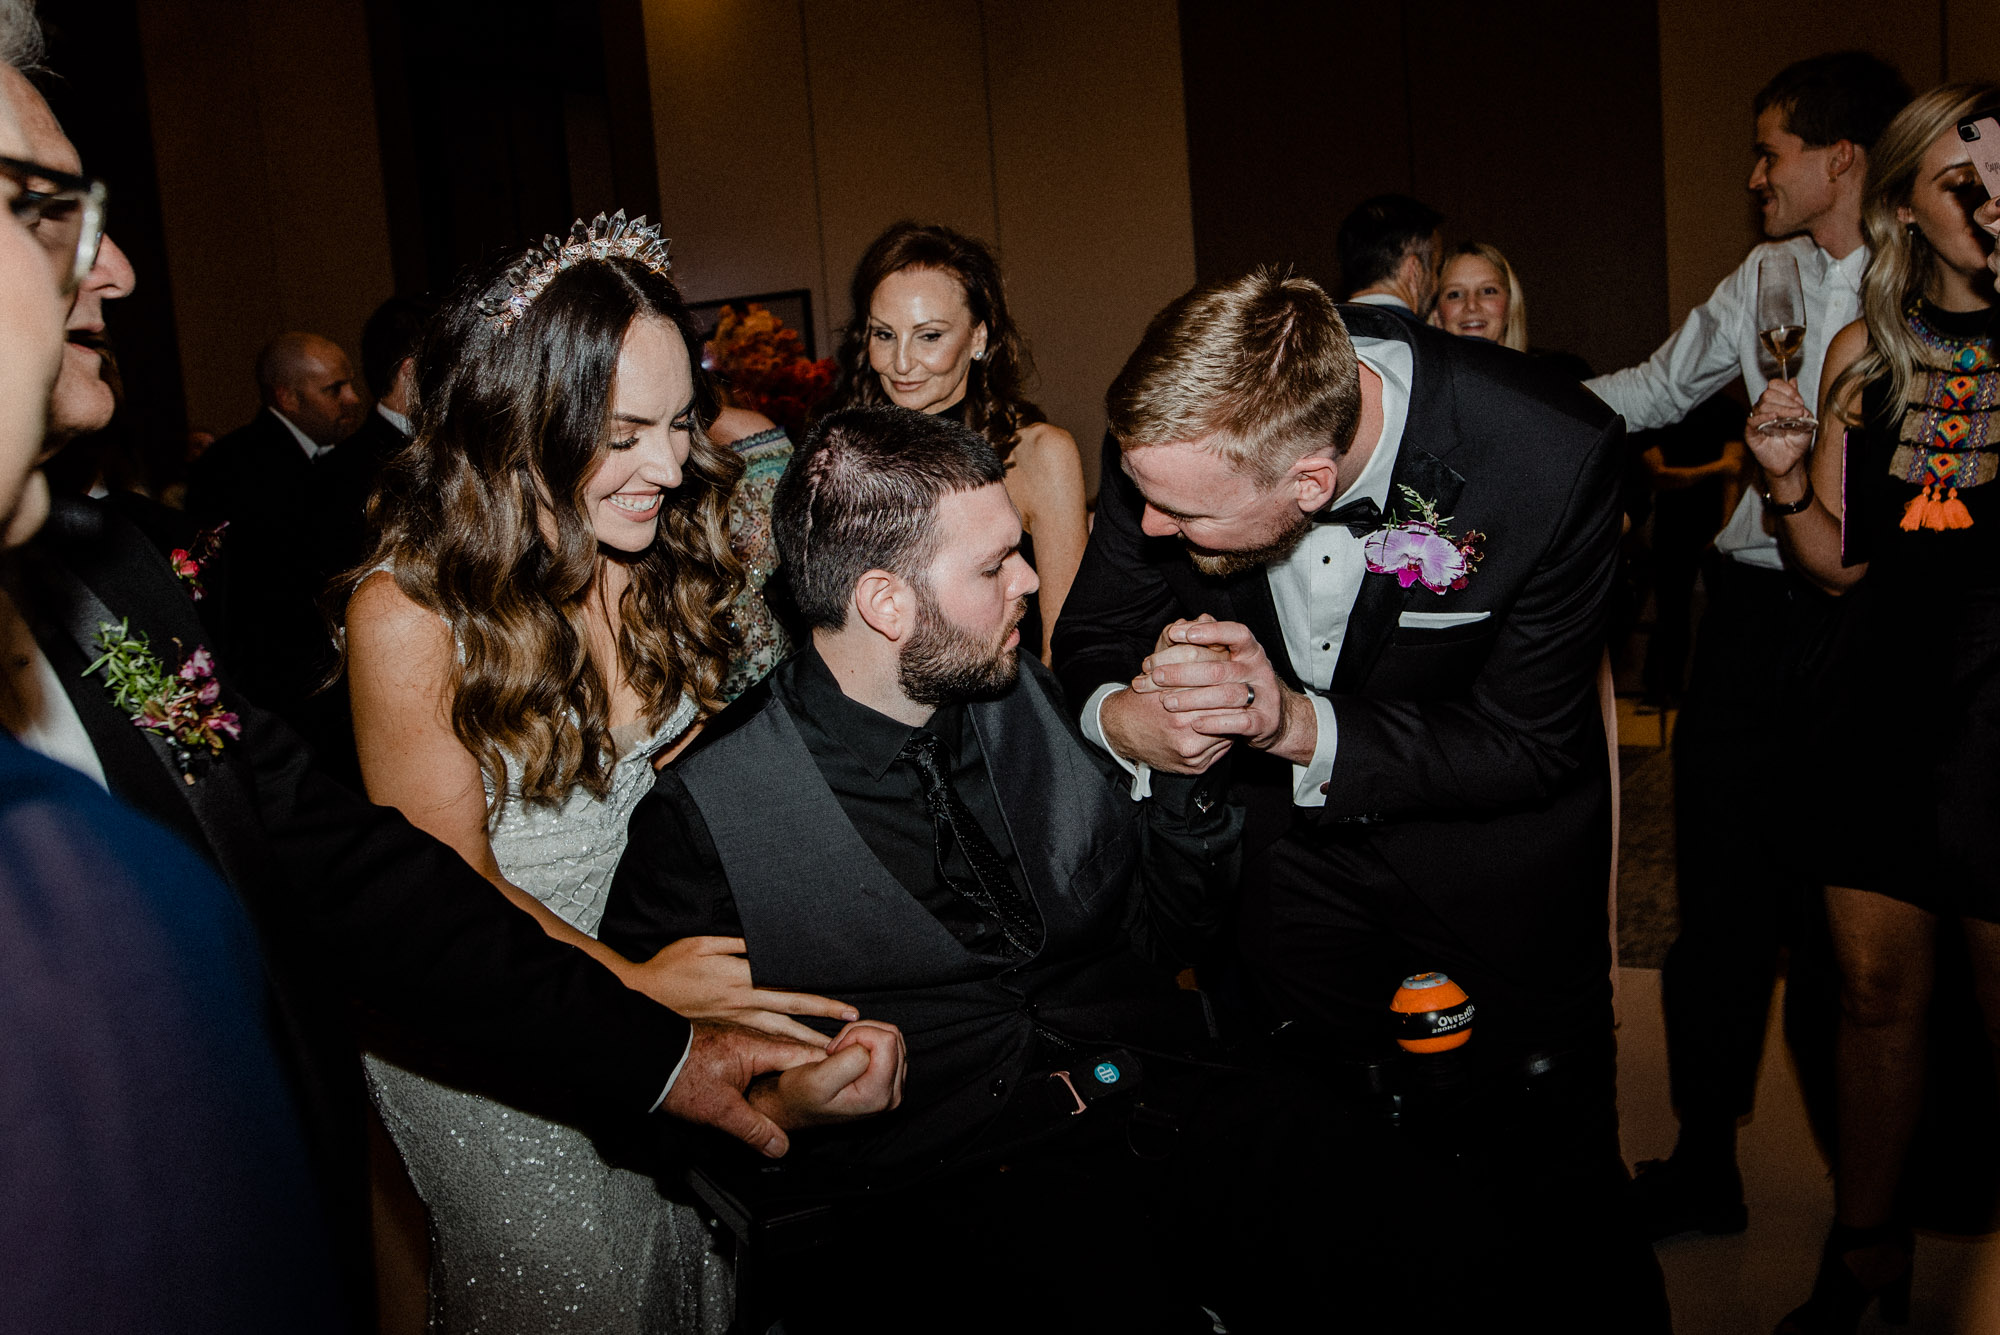 shannon-liam-westin-wedding-perth-40.jpg